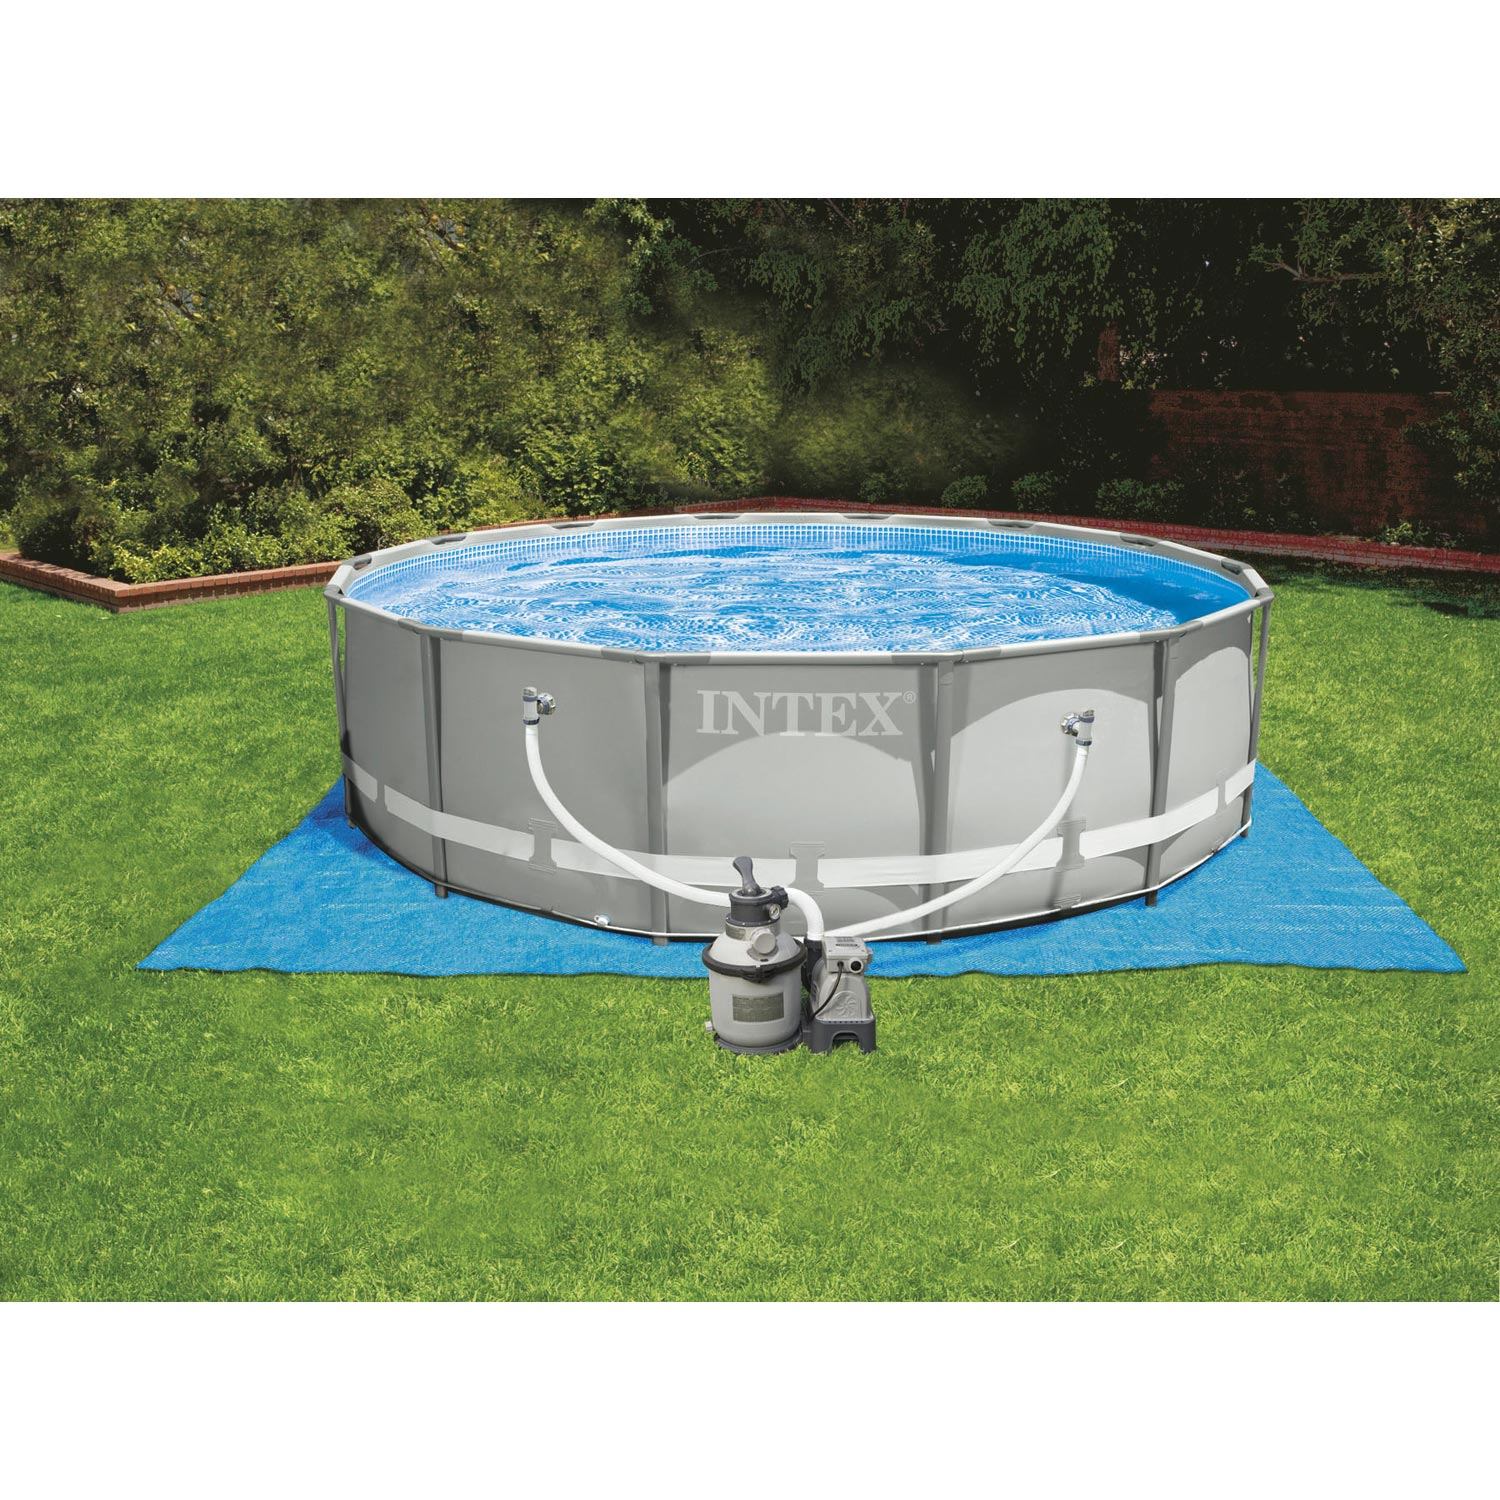 Piscine hors sol autoportante tubulaire ultra frame intex for Piscine hors sol nortland